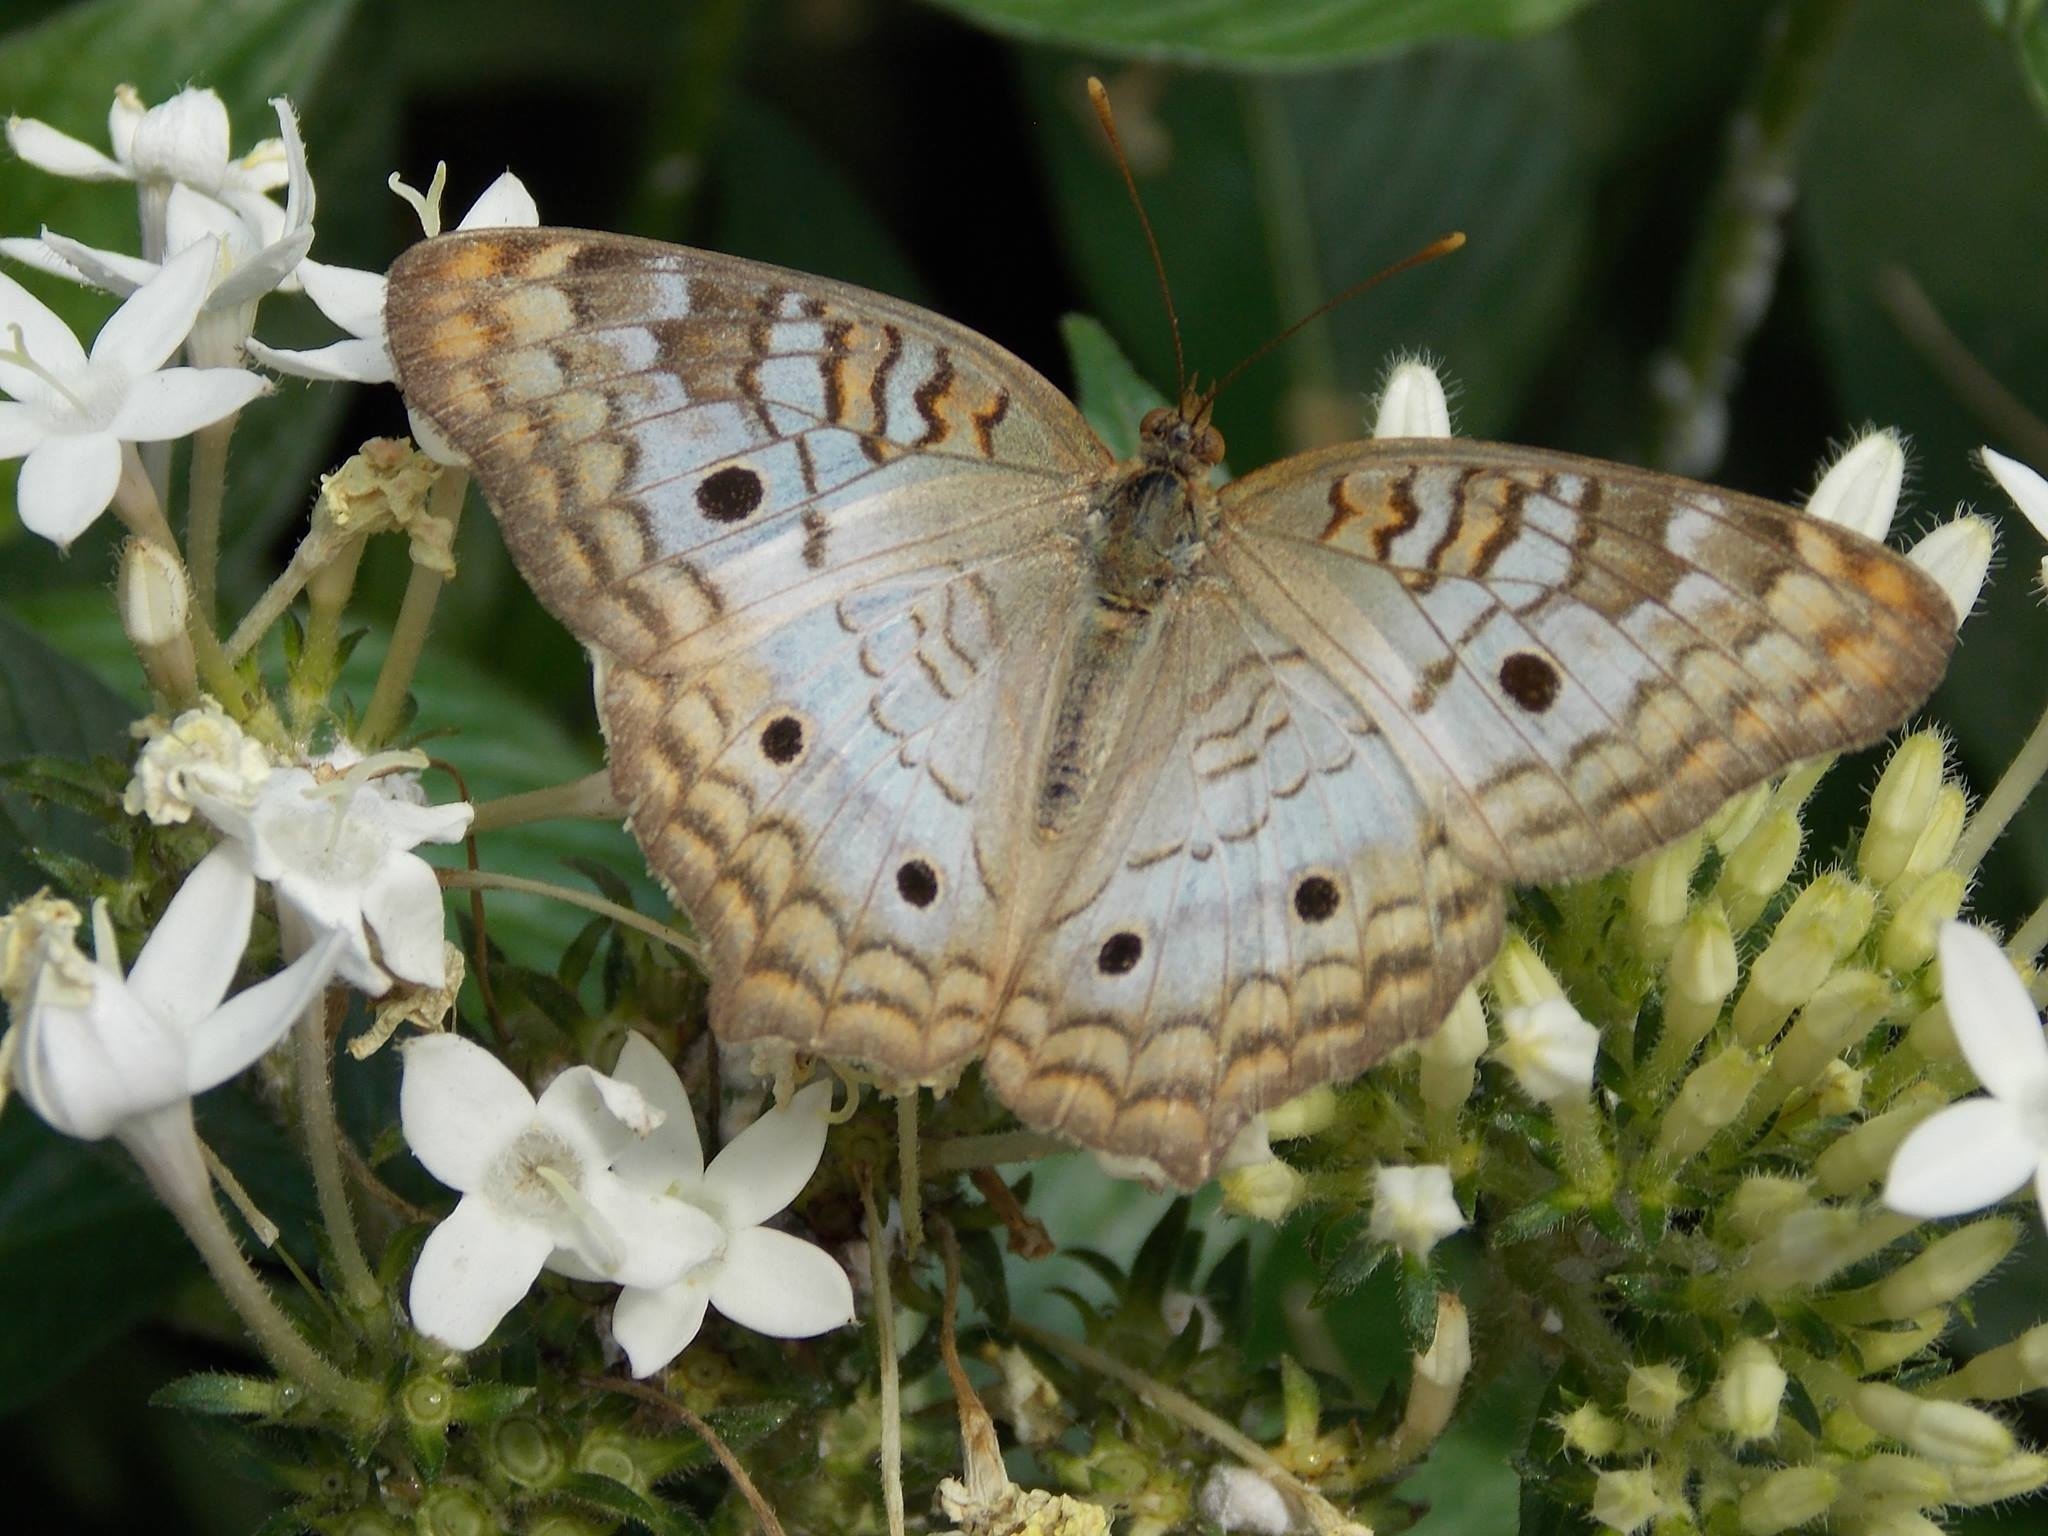 Photo taken during a visit to Butterfly Place in Chelmsford, MA -  The hint of light blue with the brown is another color combination I will be keeping in mind.